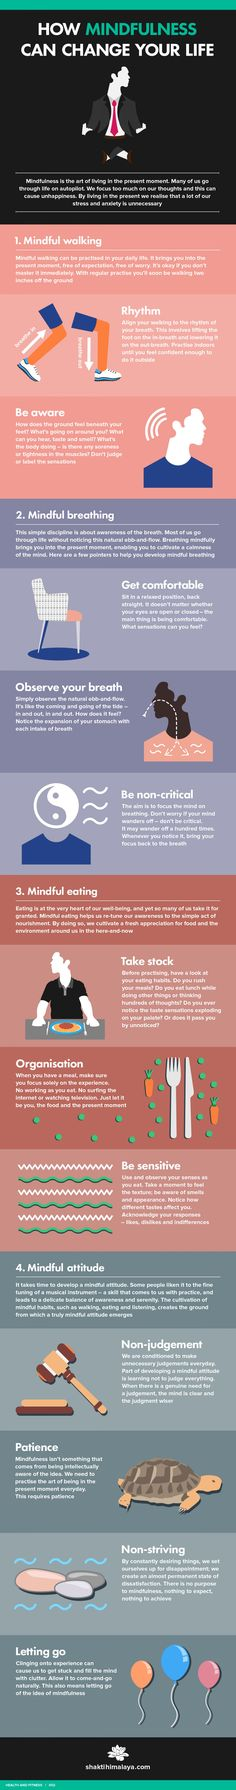 Mindfulness is not a magic trick that all of a suddeneliminates stress and gives you the life of your dreams. But people who have integrated a mindfulness practice into their lives repeatedly use the phrase life-changing to describe it. Health And Wellness, Mental Health, Health Tips, Mental Training, Training Plan, Mindfulness Practice, Mindfulness Exercises, Mindfulness Activities, Mindful Living